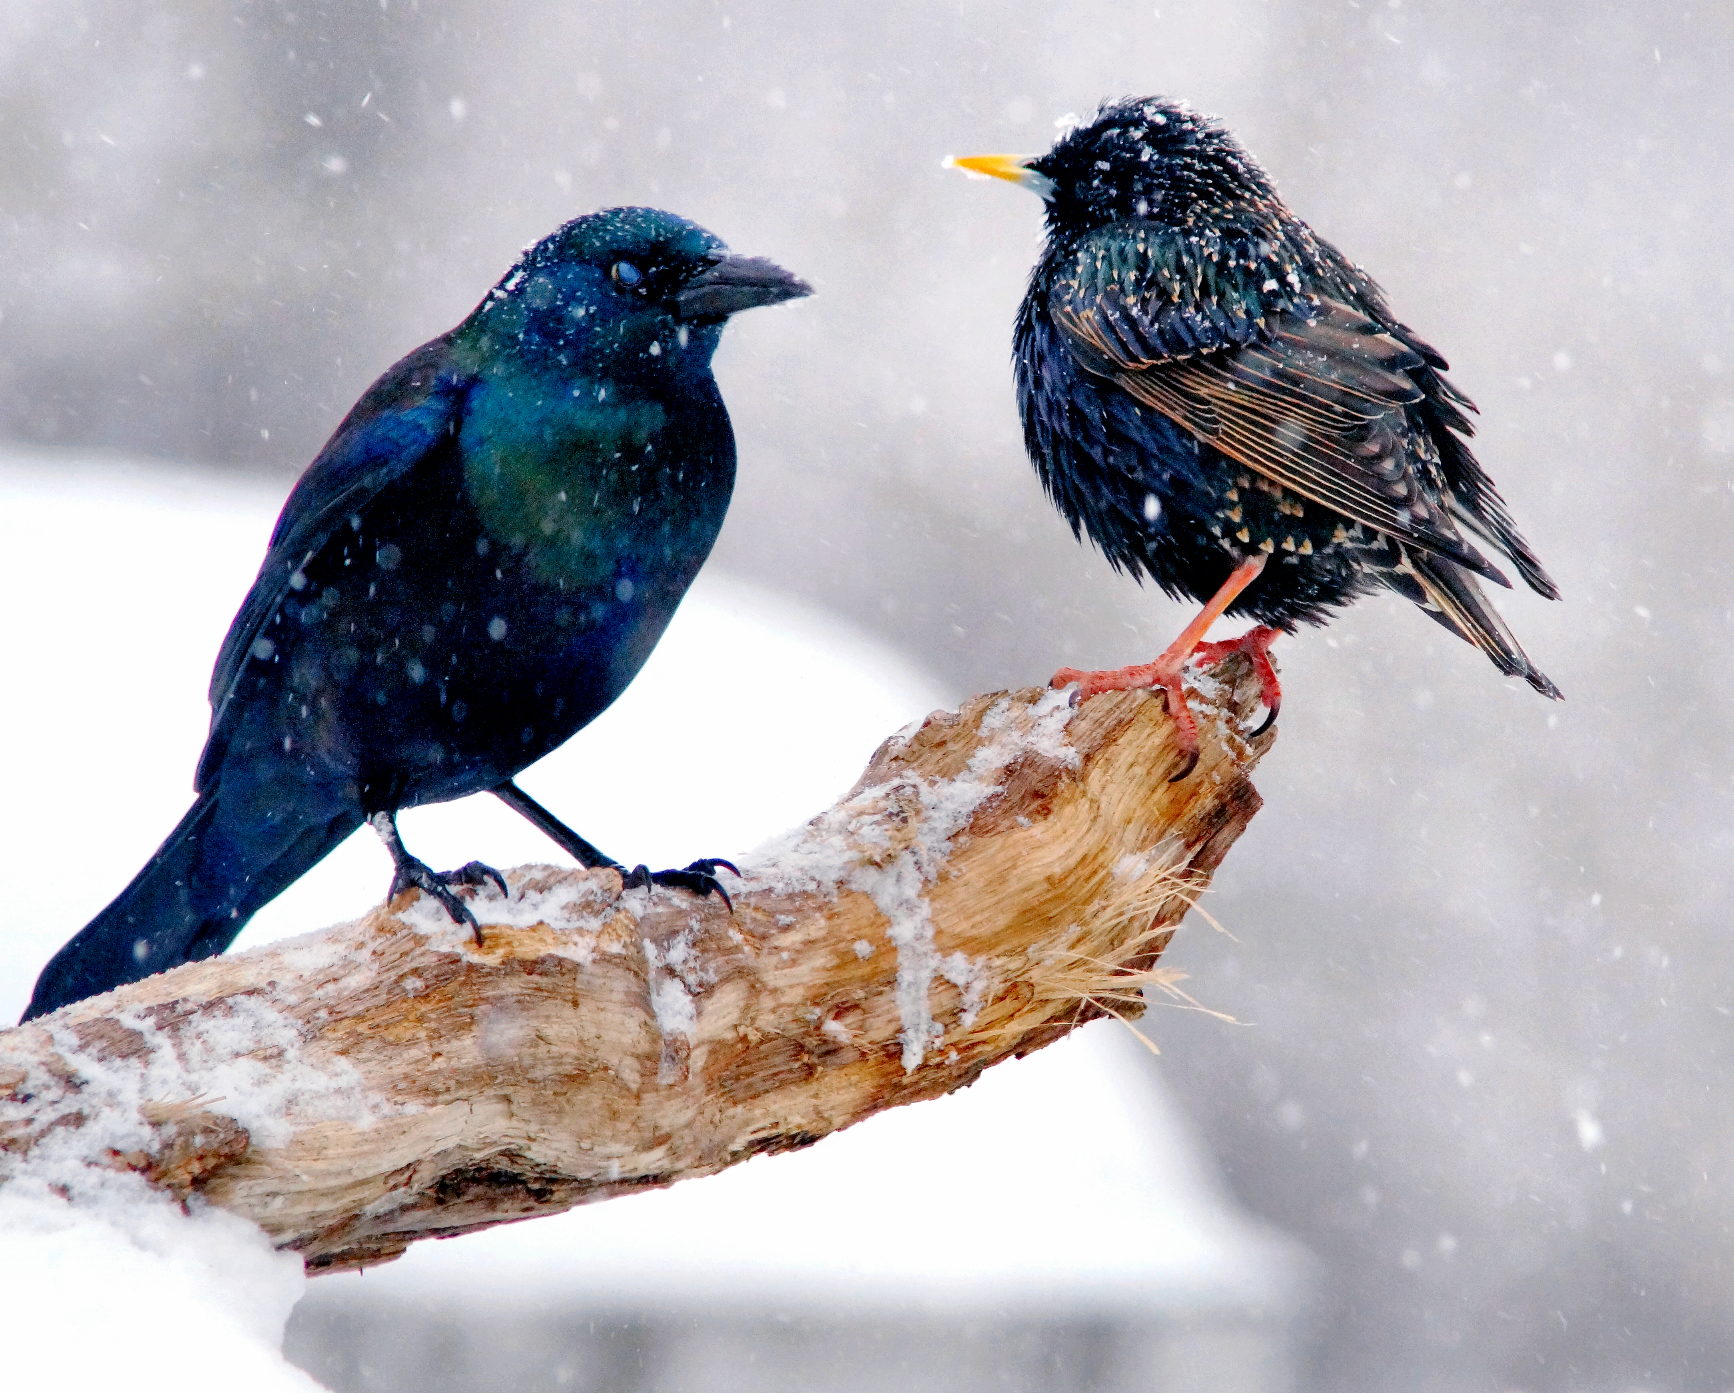 Common Grackle & European Starling